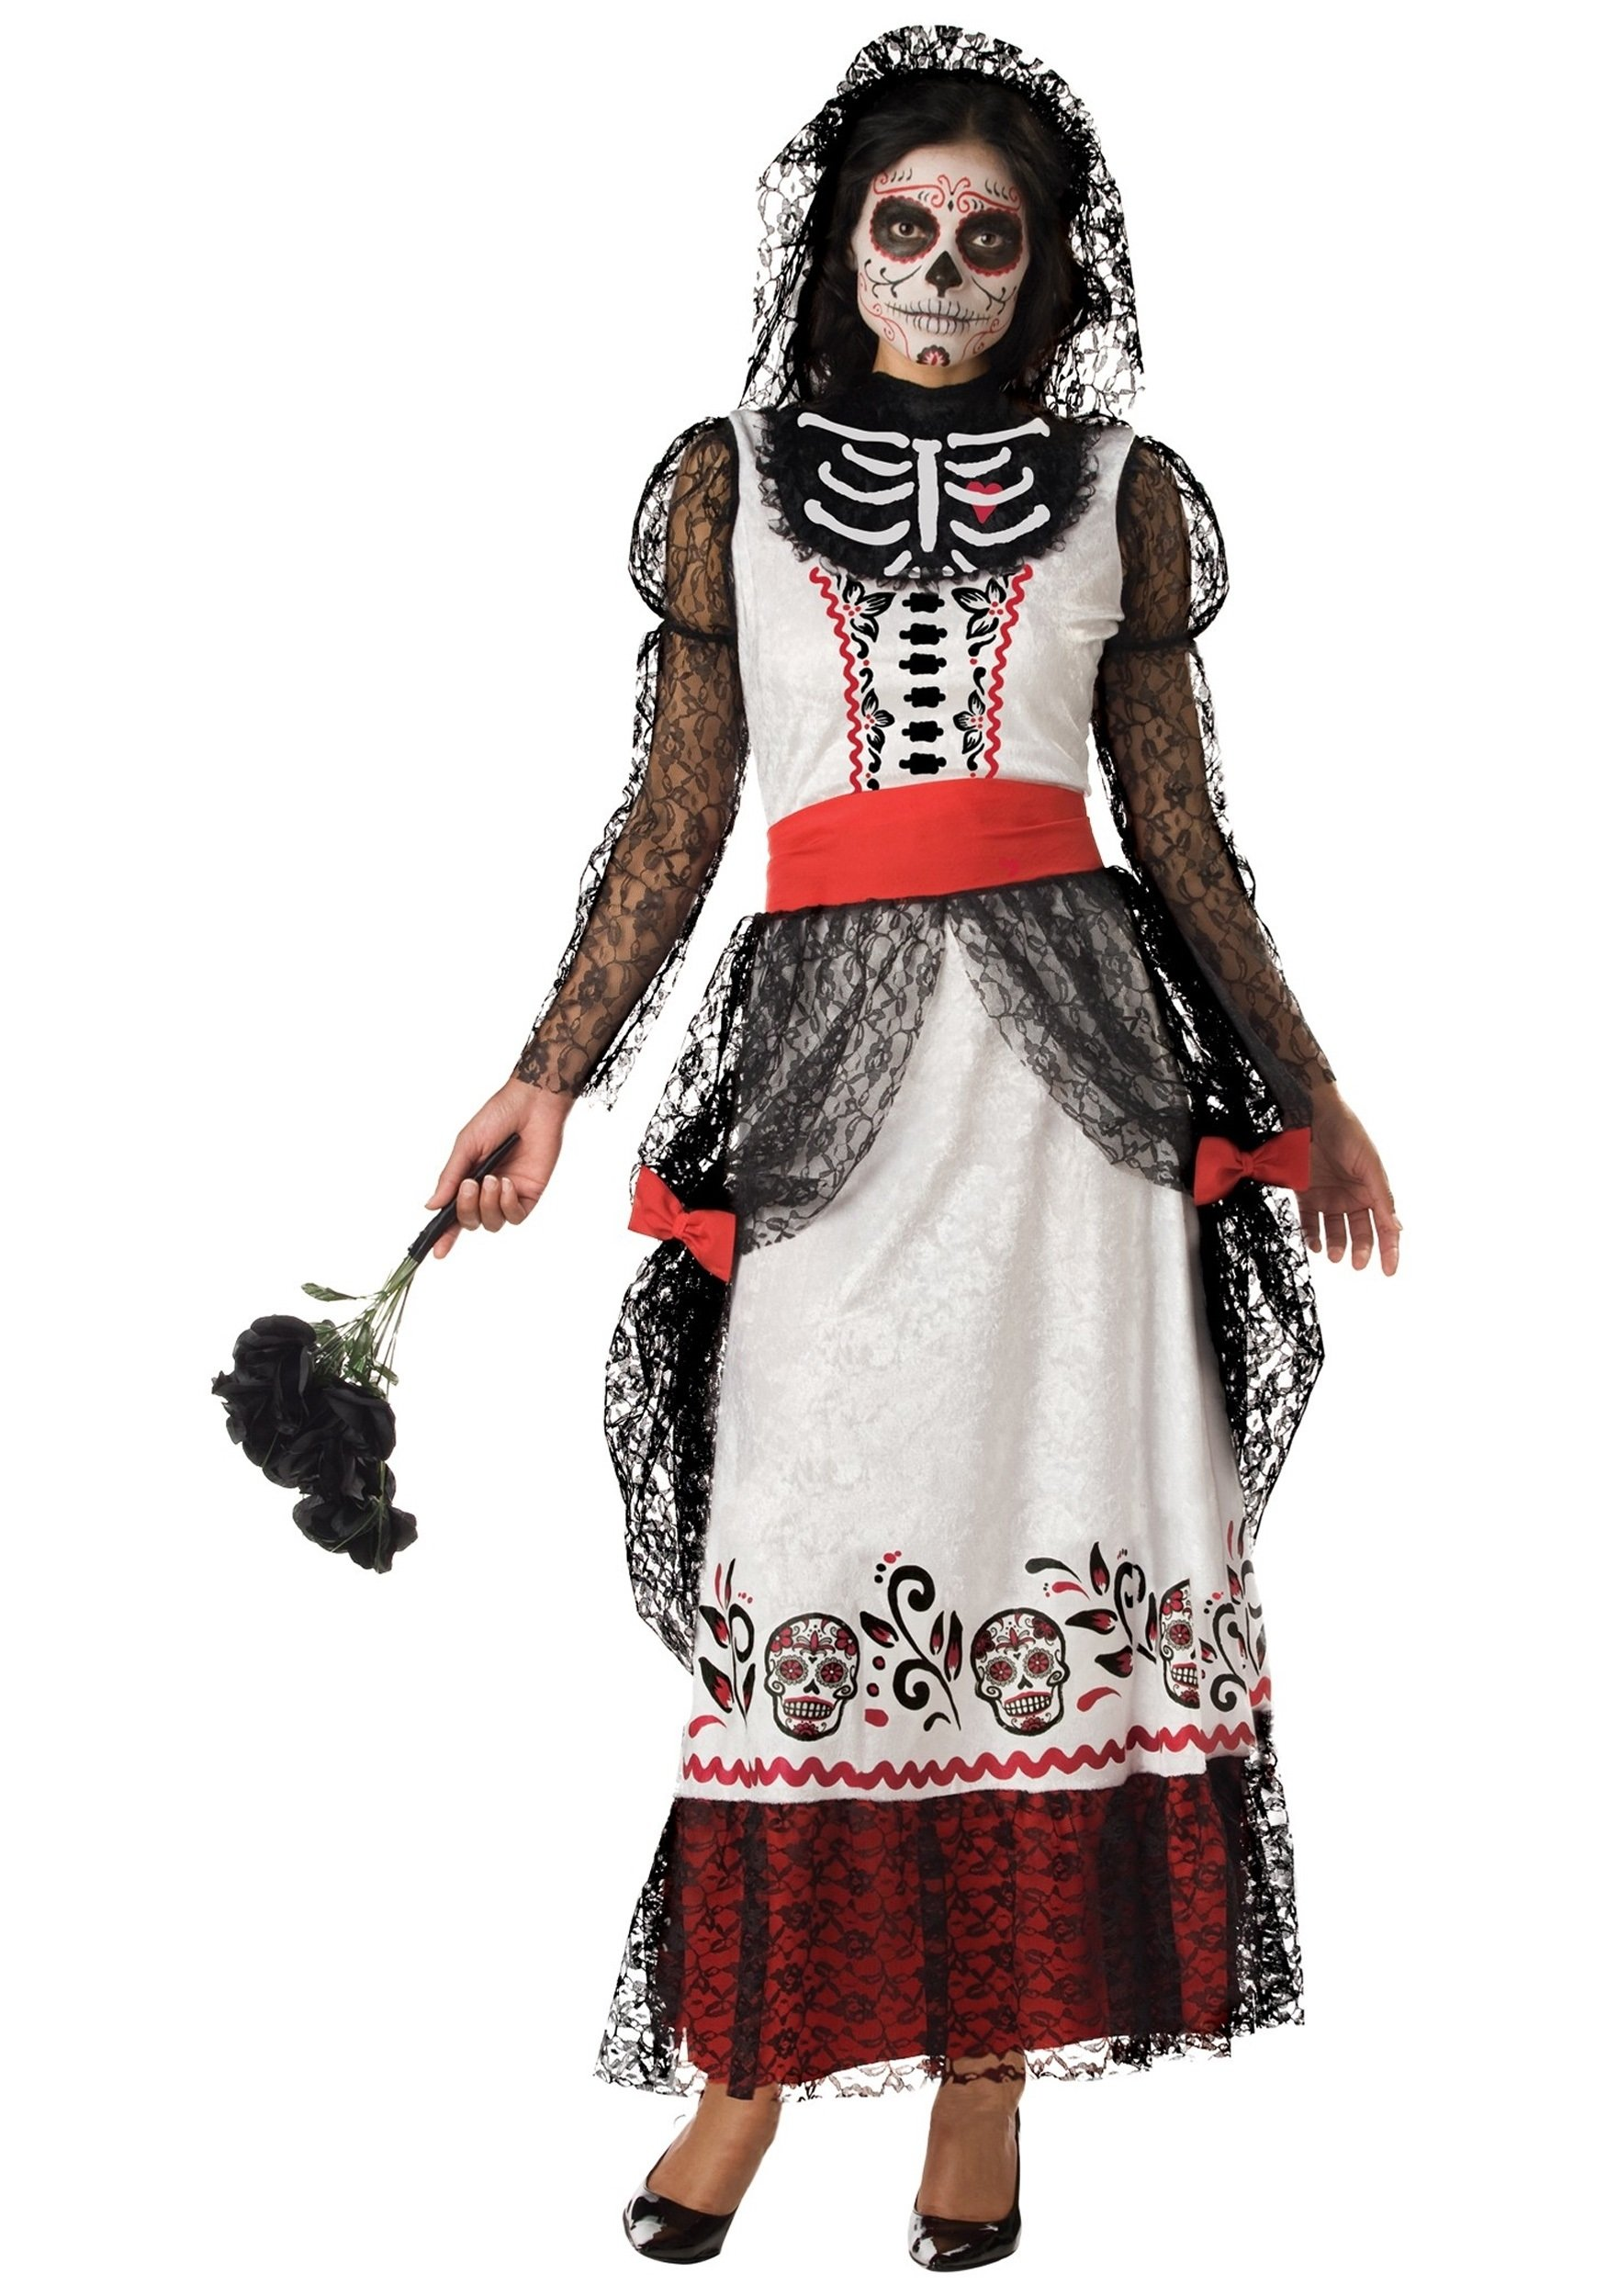 10 Spectacular Scary Halloween Costume Ideas For Women new and scary halloween costume ideas for kids loversiq 2 2020